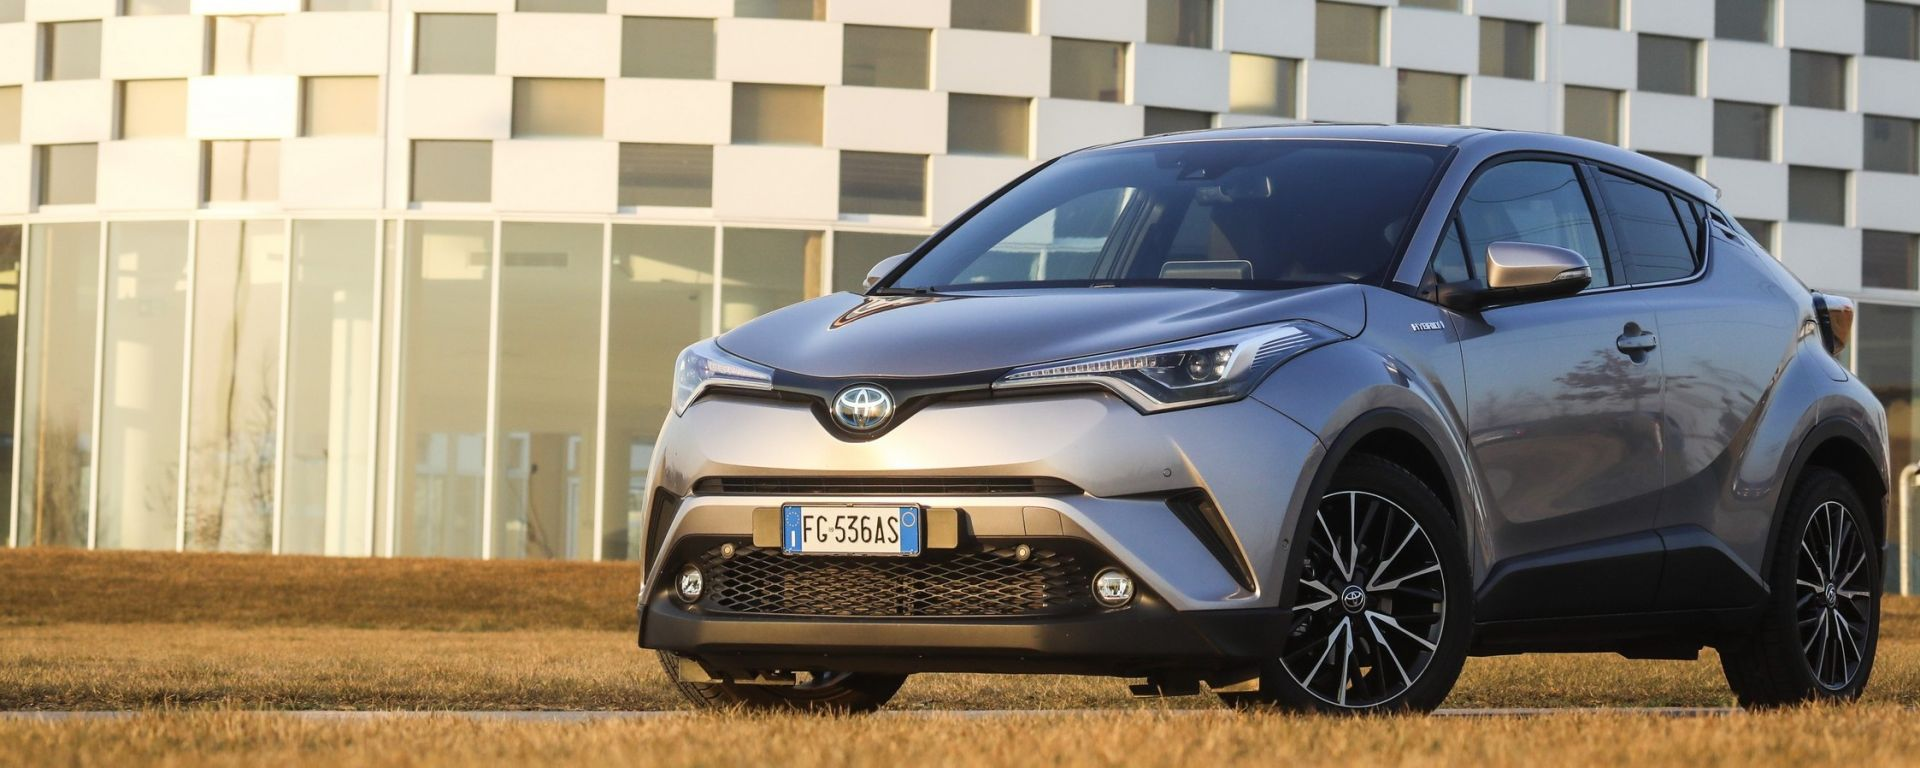 Toyota C-HR: le vostre domande. Guarda il video